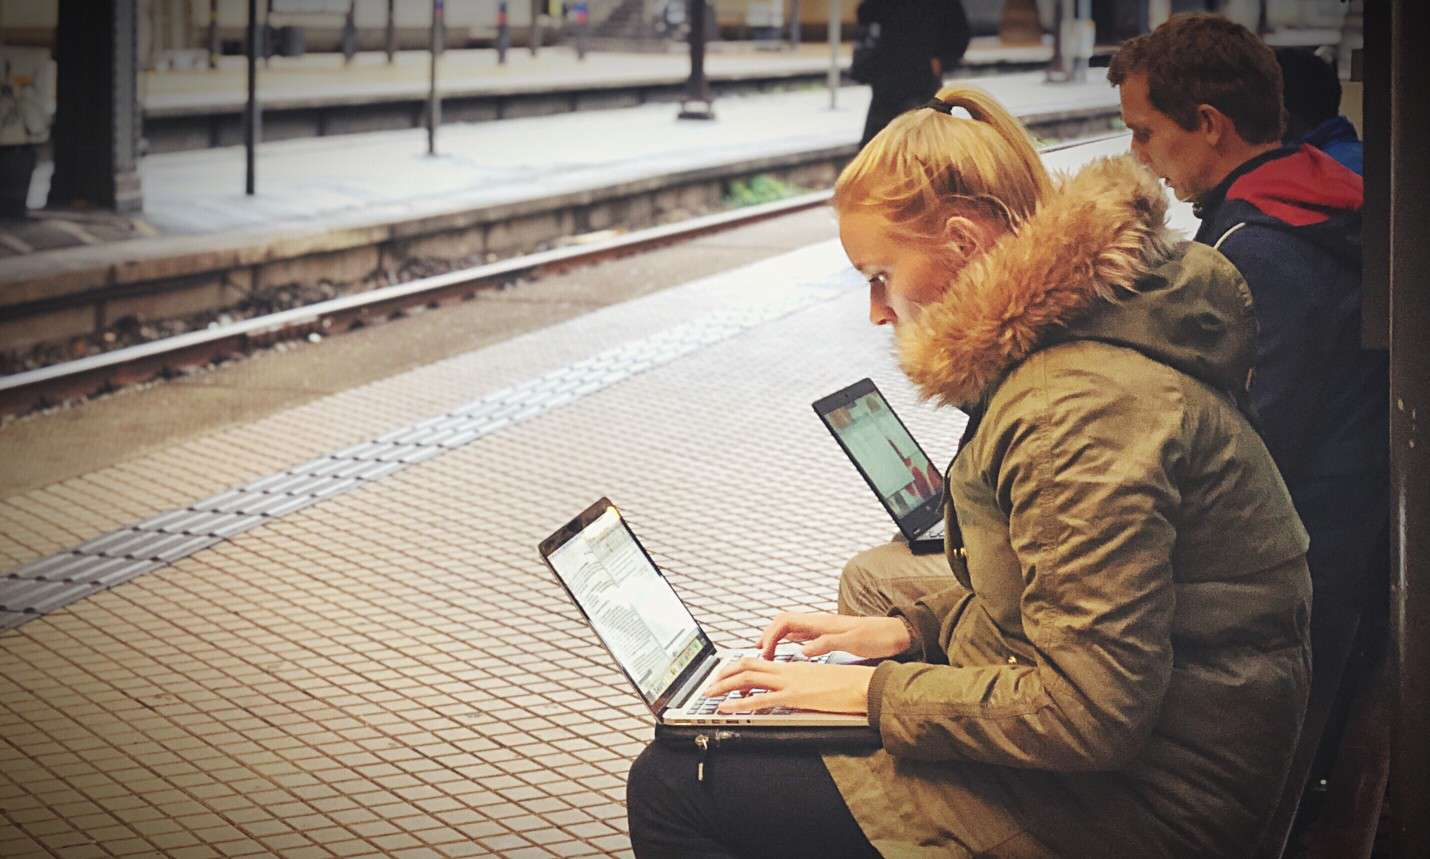 People waiting in a train station using laptop computers.